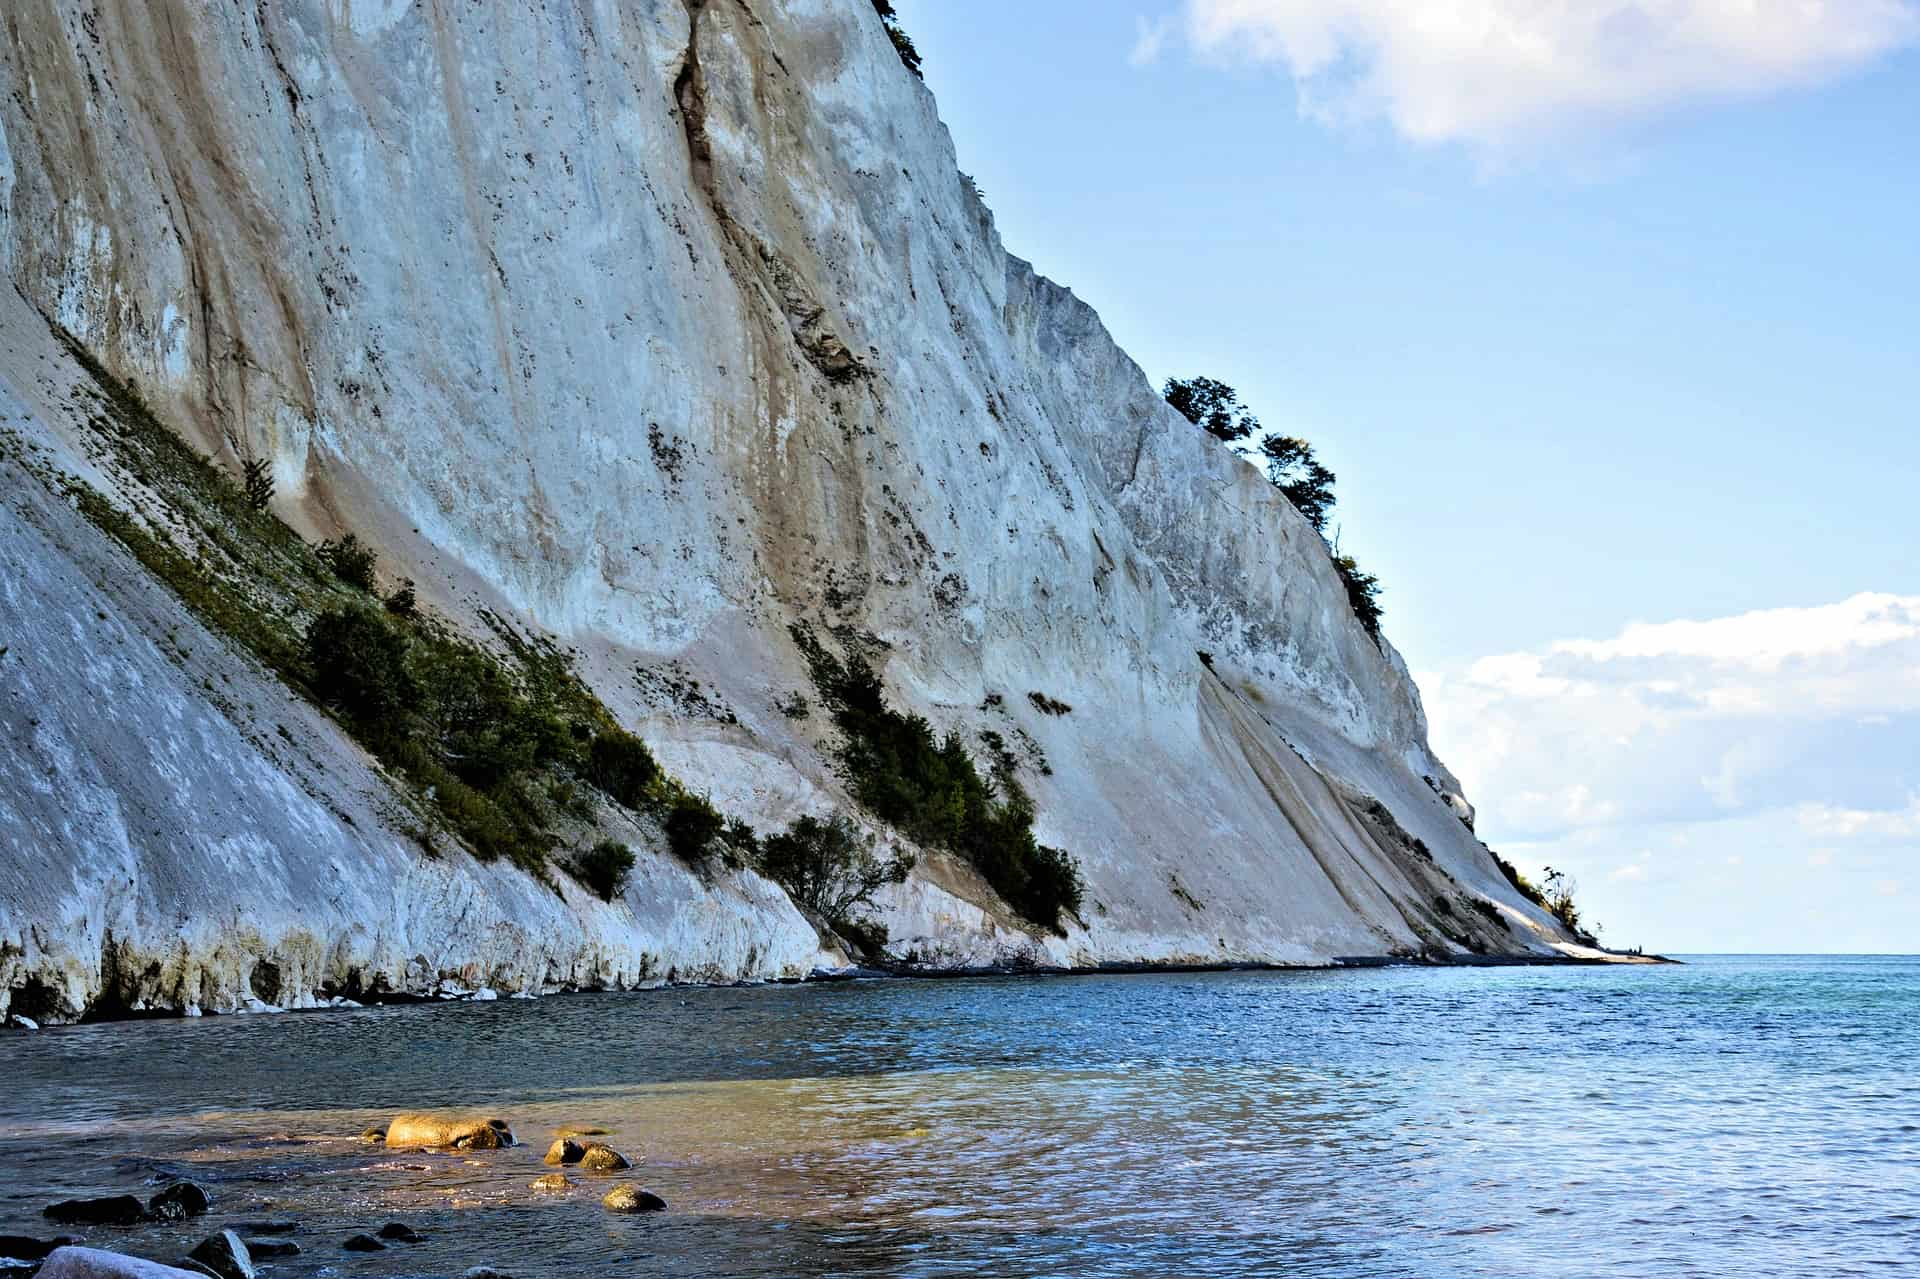 The highest point of Møns Klint is 143 meters. The pebble beach below can be reached via a number of steep stairs.